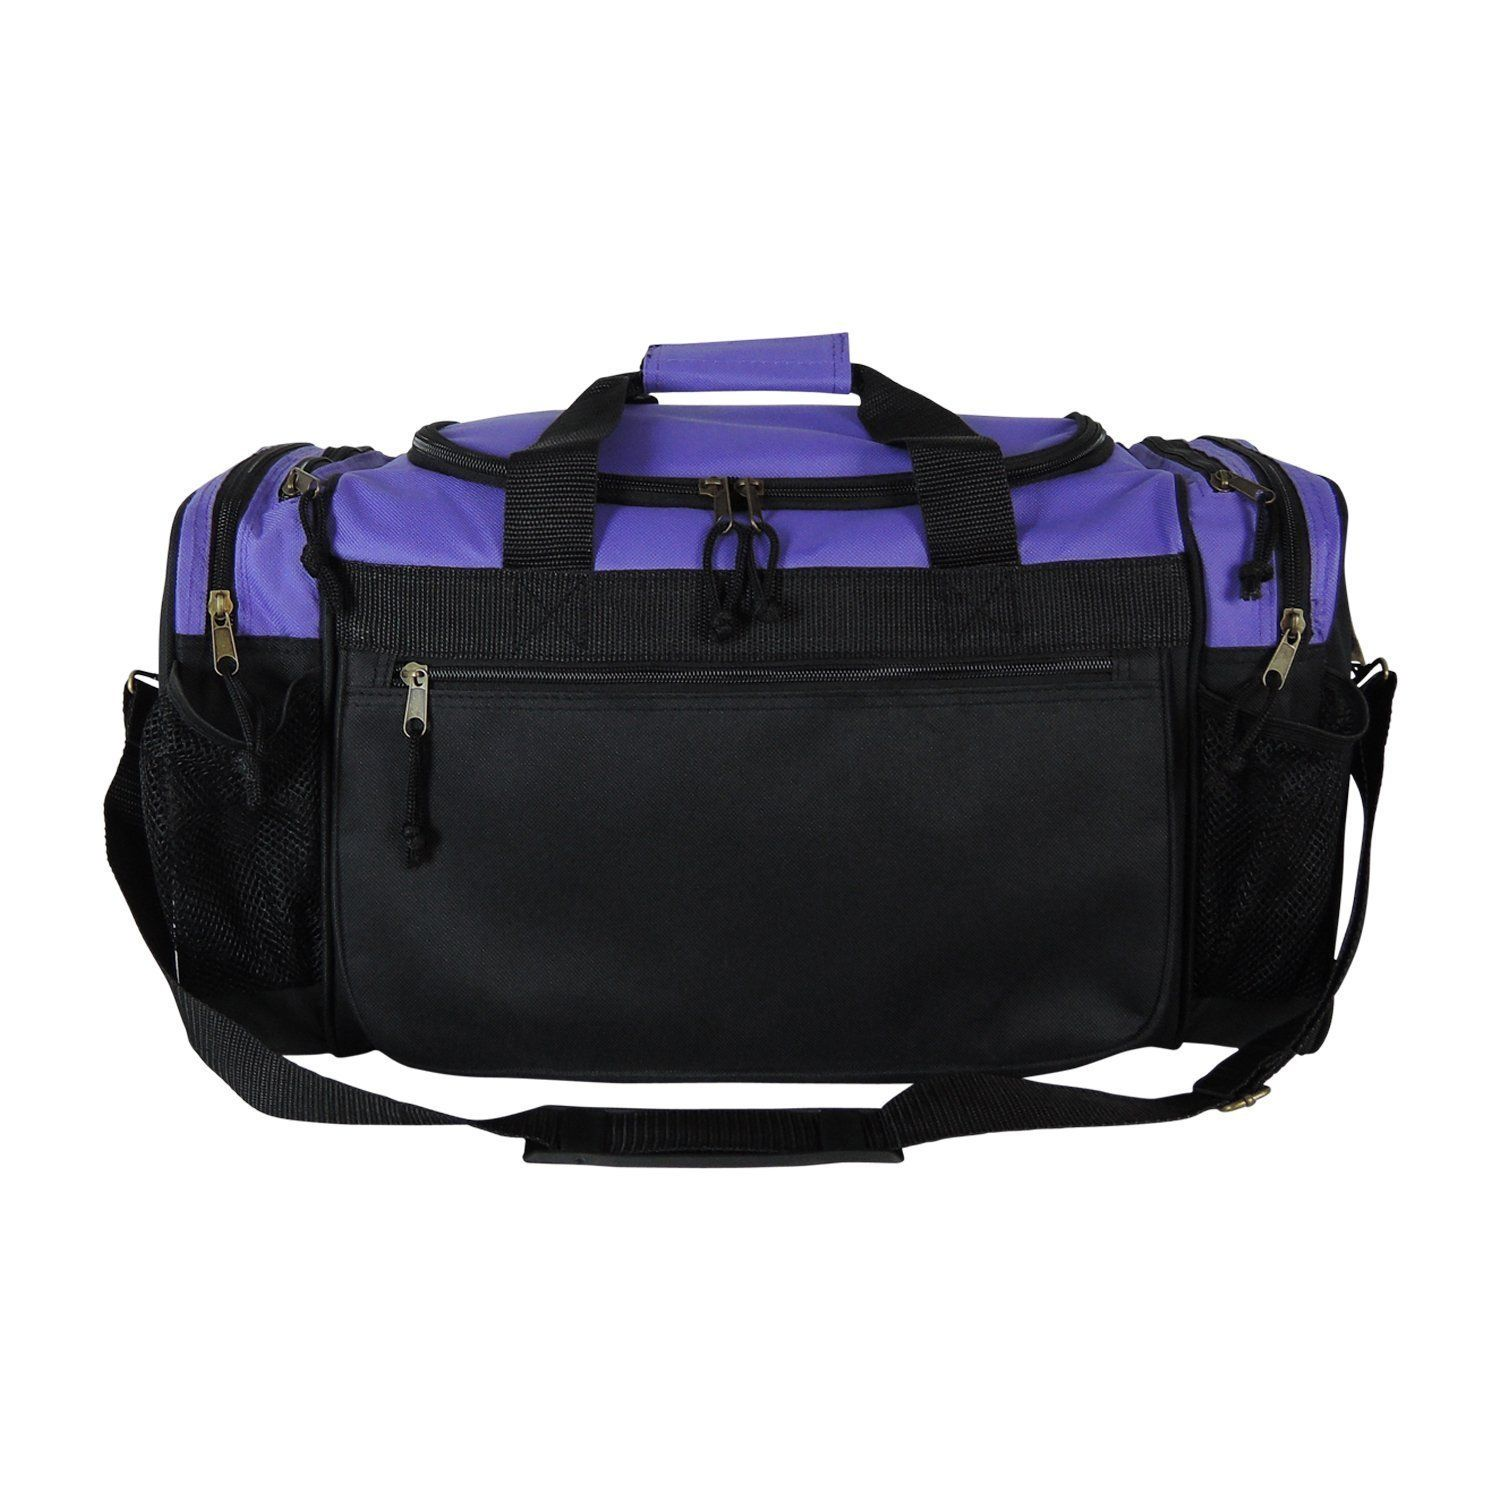 6b4bfdfa33a ProEquip 17  Sport Gym Duffle Bag Travel Size Sport Durable Gym Bag --  Details can be found by clicking on the image.